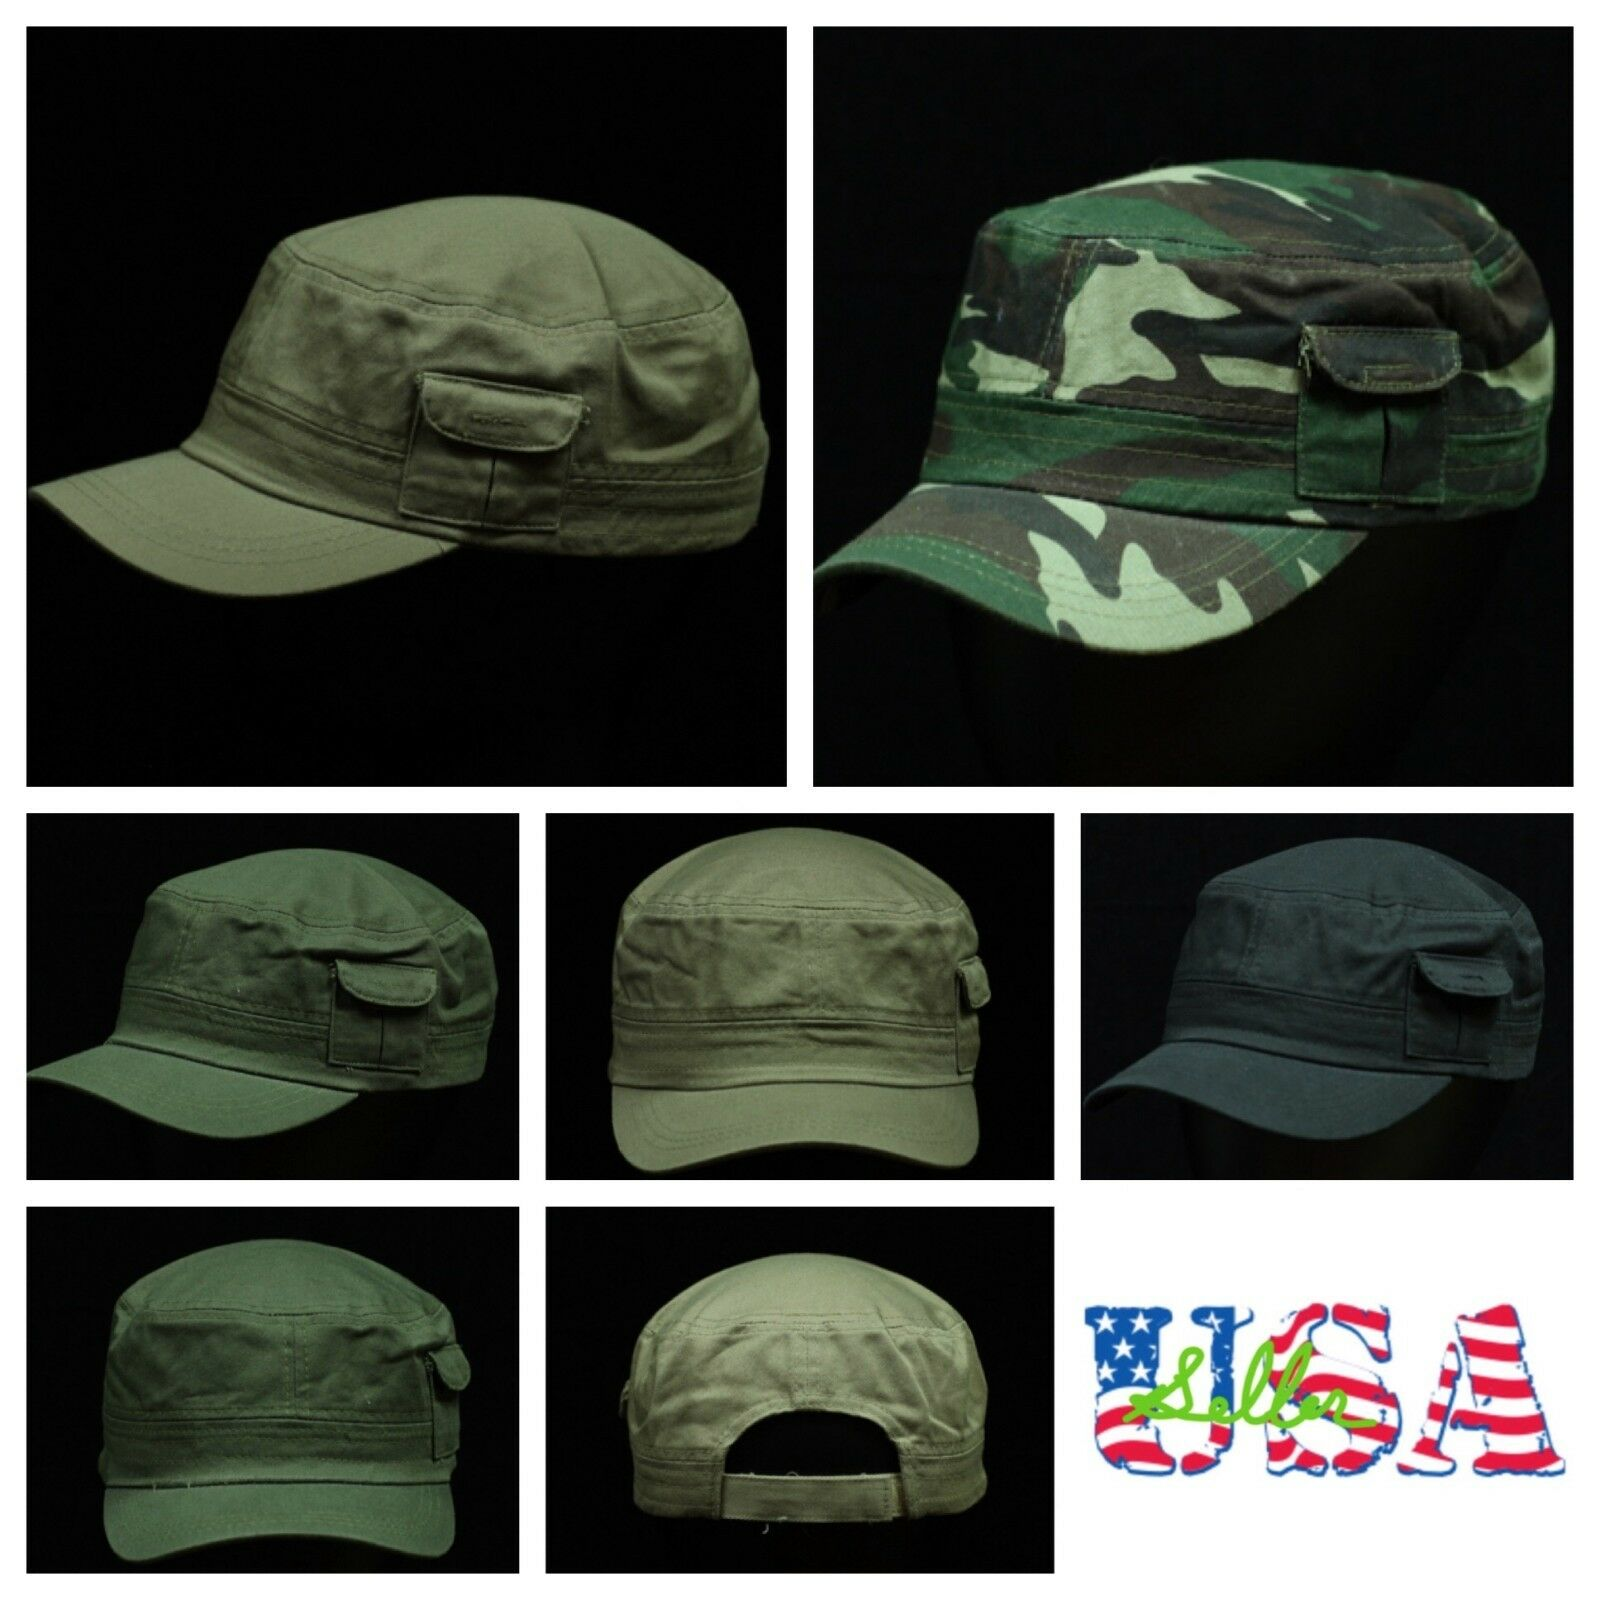 Unisex Army Military Cadet Patrol Combat Field Baseball Cap Adjustable Trucker